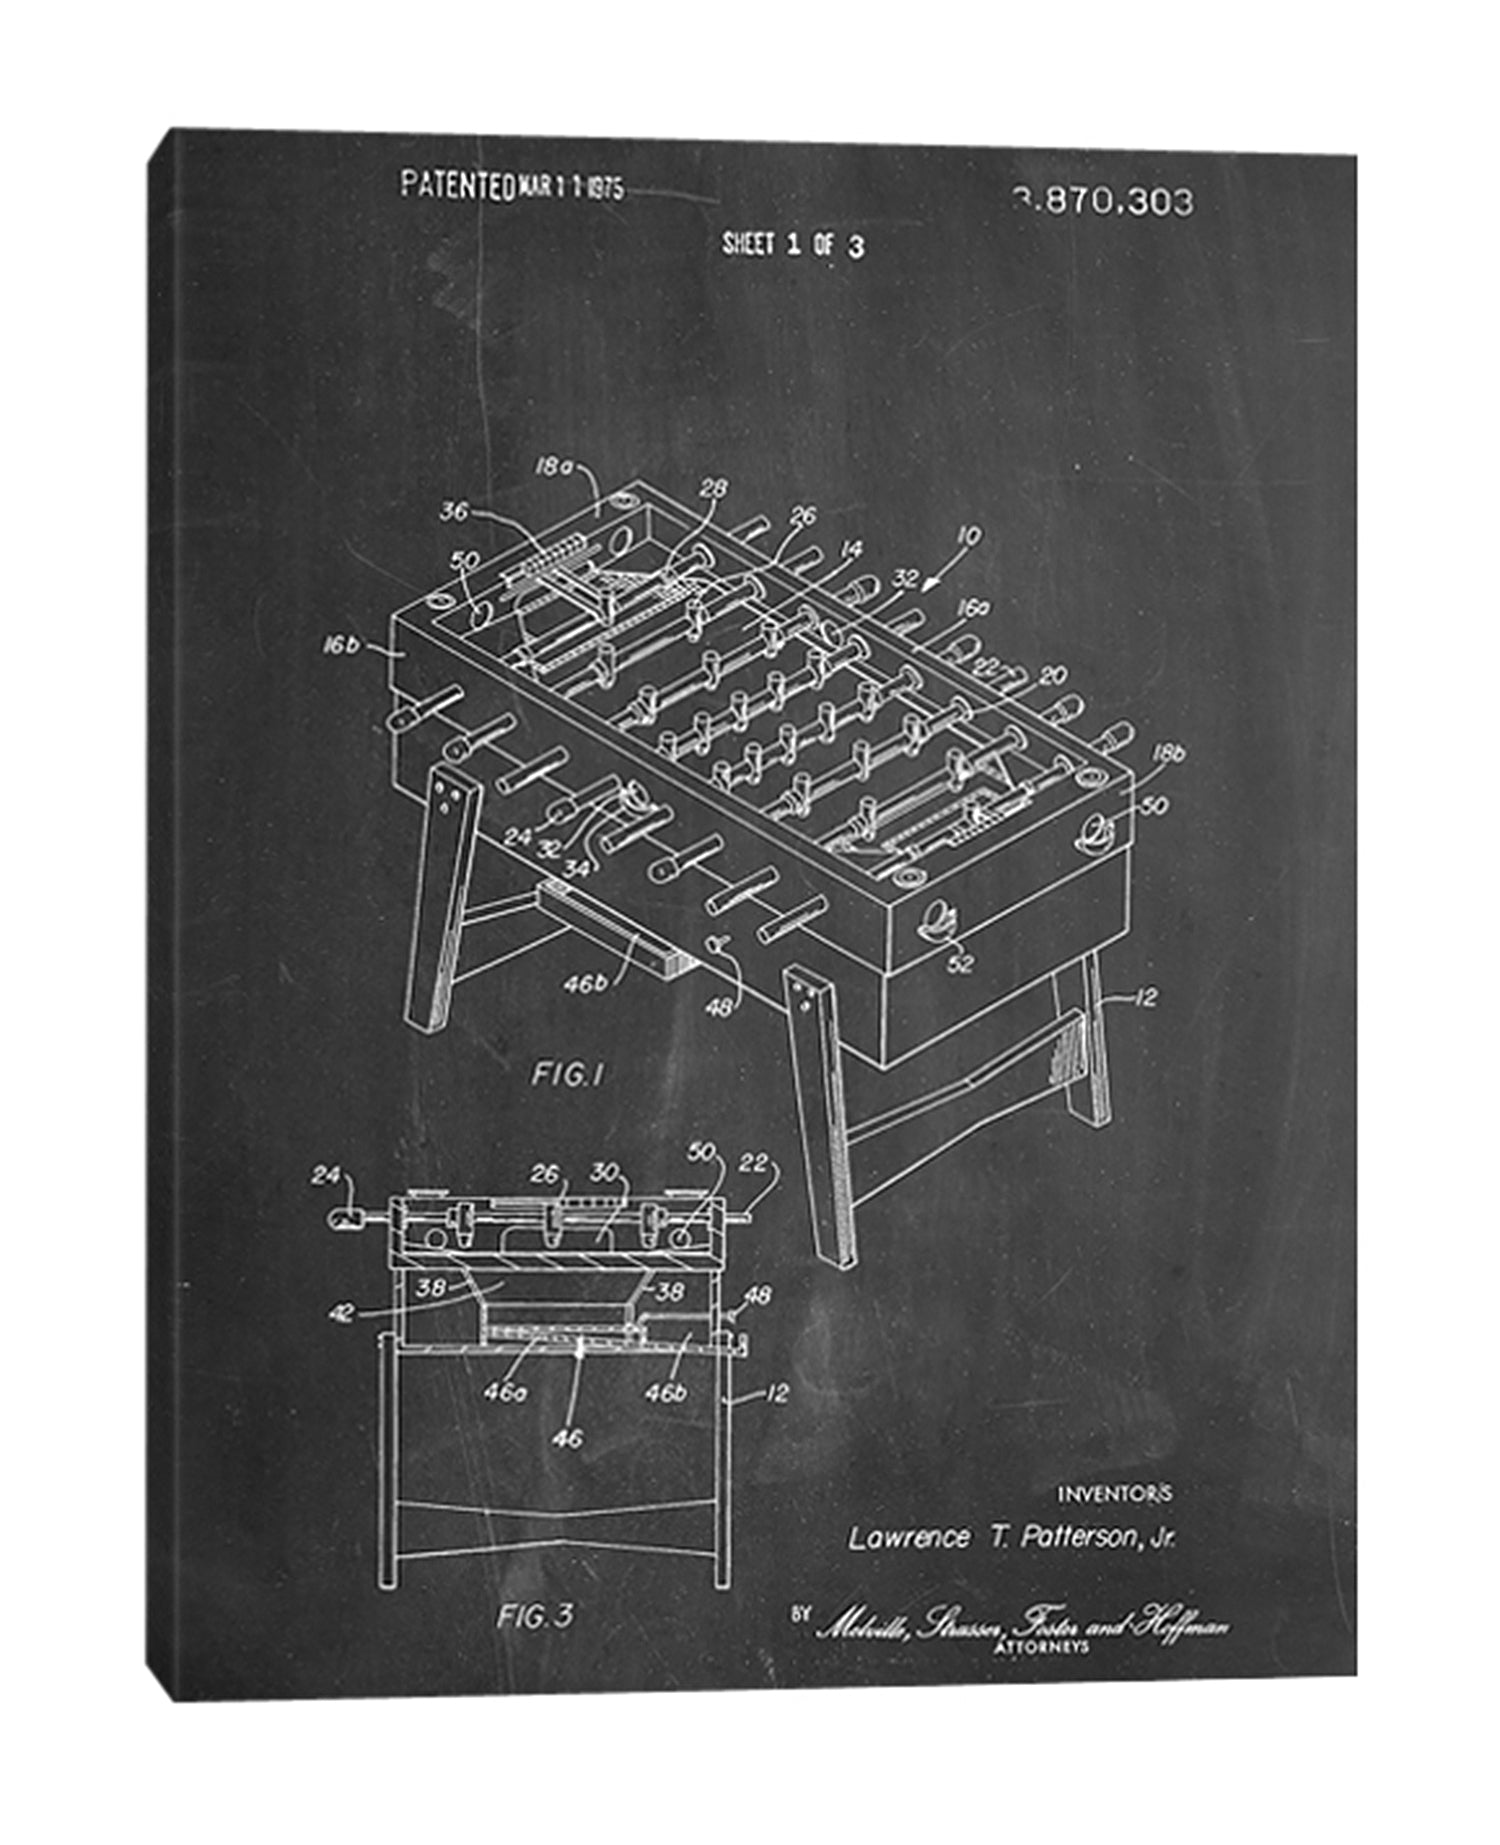 Cole-Borders,Modern & Contemporary,Entertainment,fooseballs,foose,drawings,sketches,hobbies,patented,numbers,Red,Blue,Charcoal Gray,Slate Gray,Green,Black